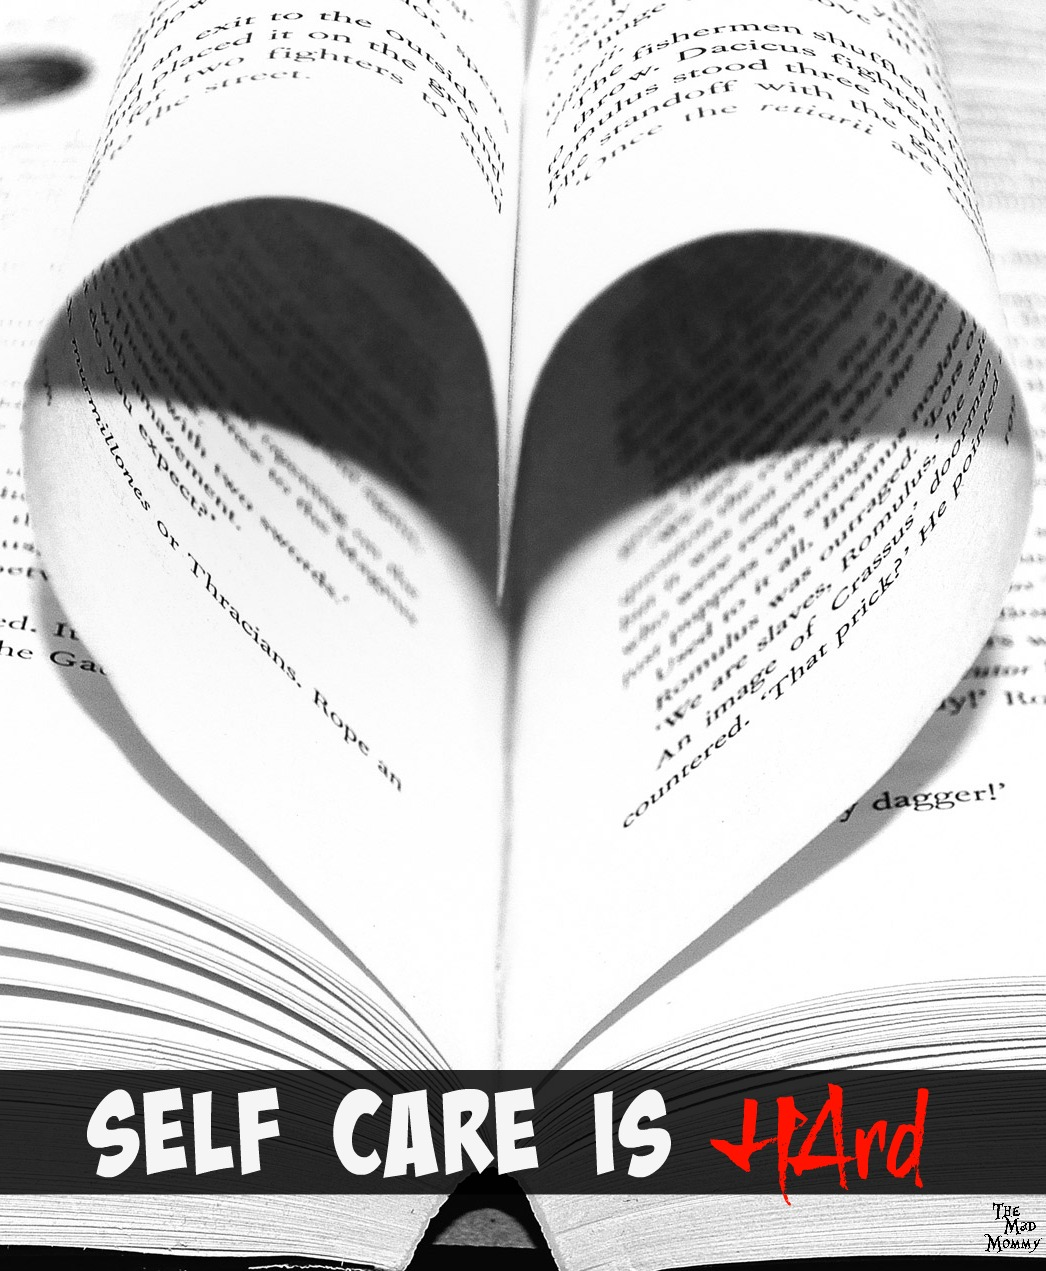 Self care is hard and it is the easiest thing to overlook and neglect. We often spend so much time caring for others, that we forget to take care of ourselves.